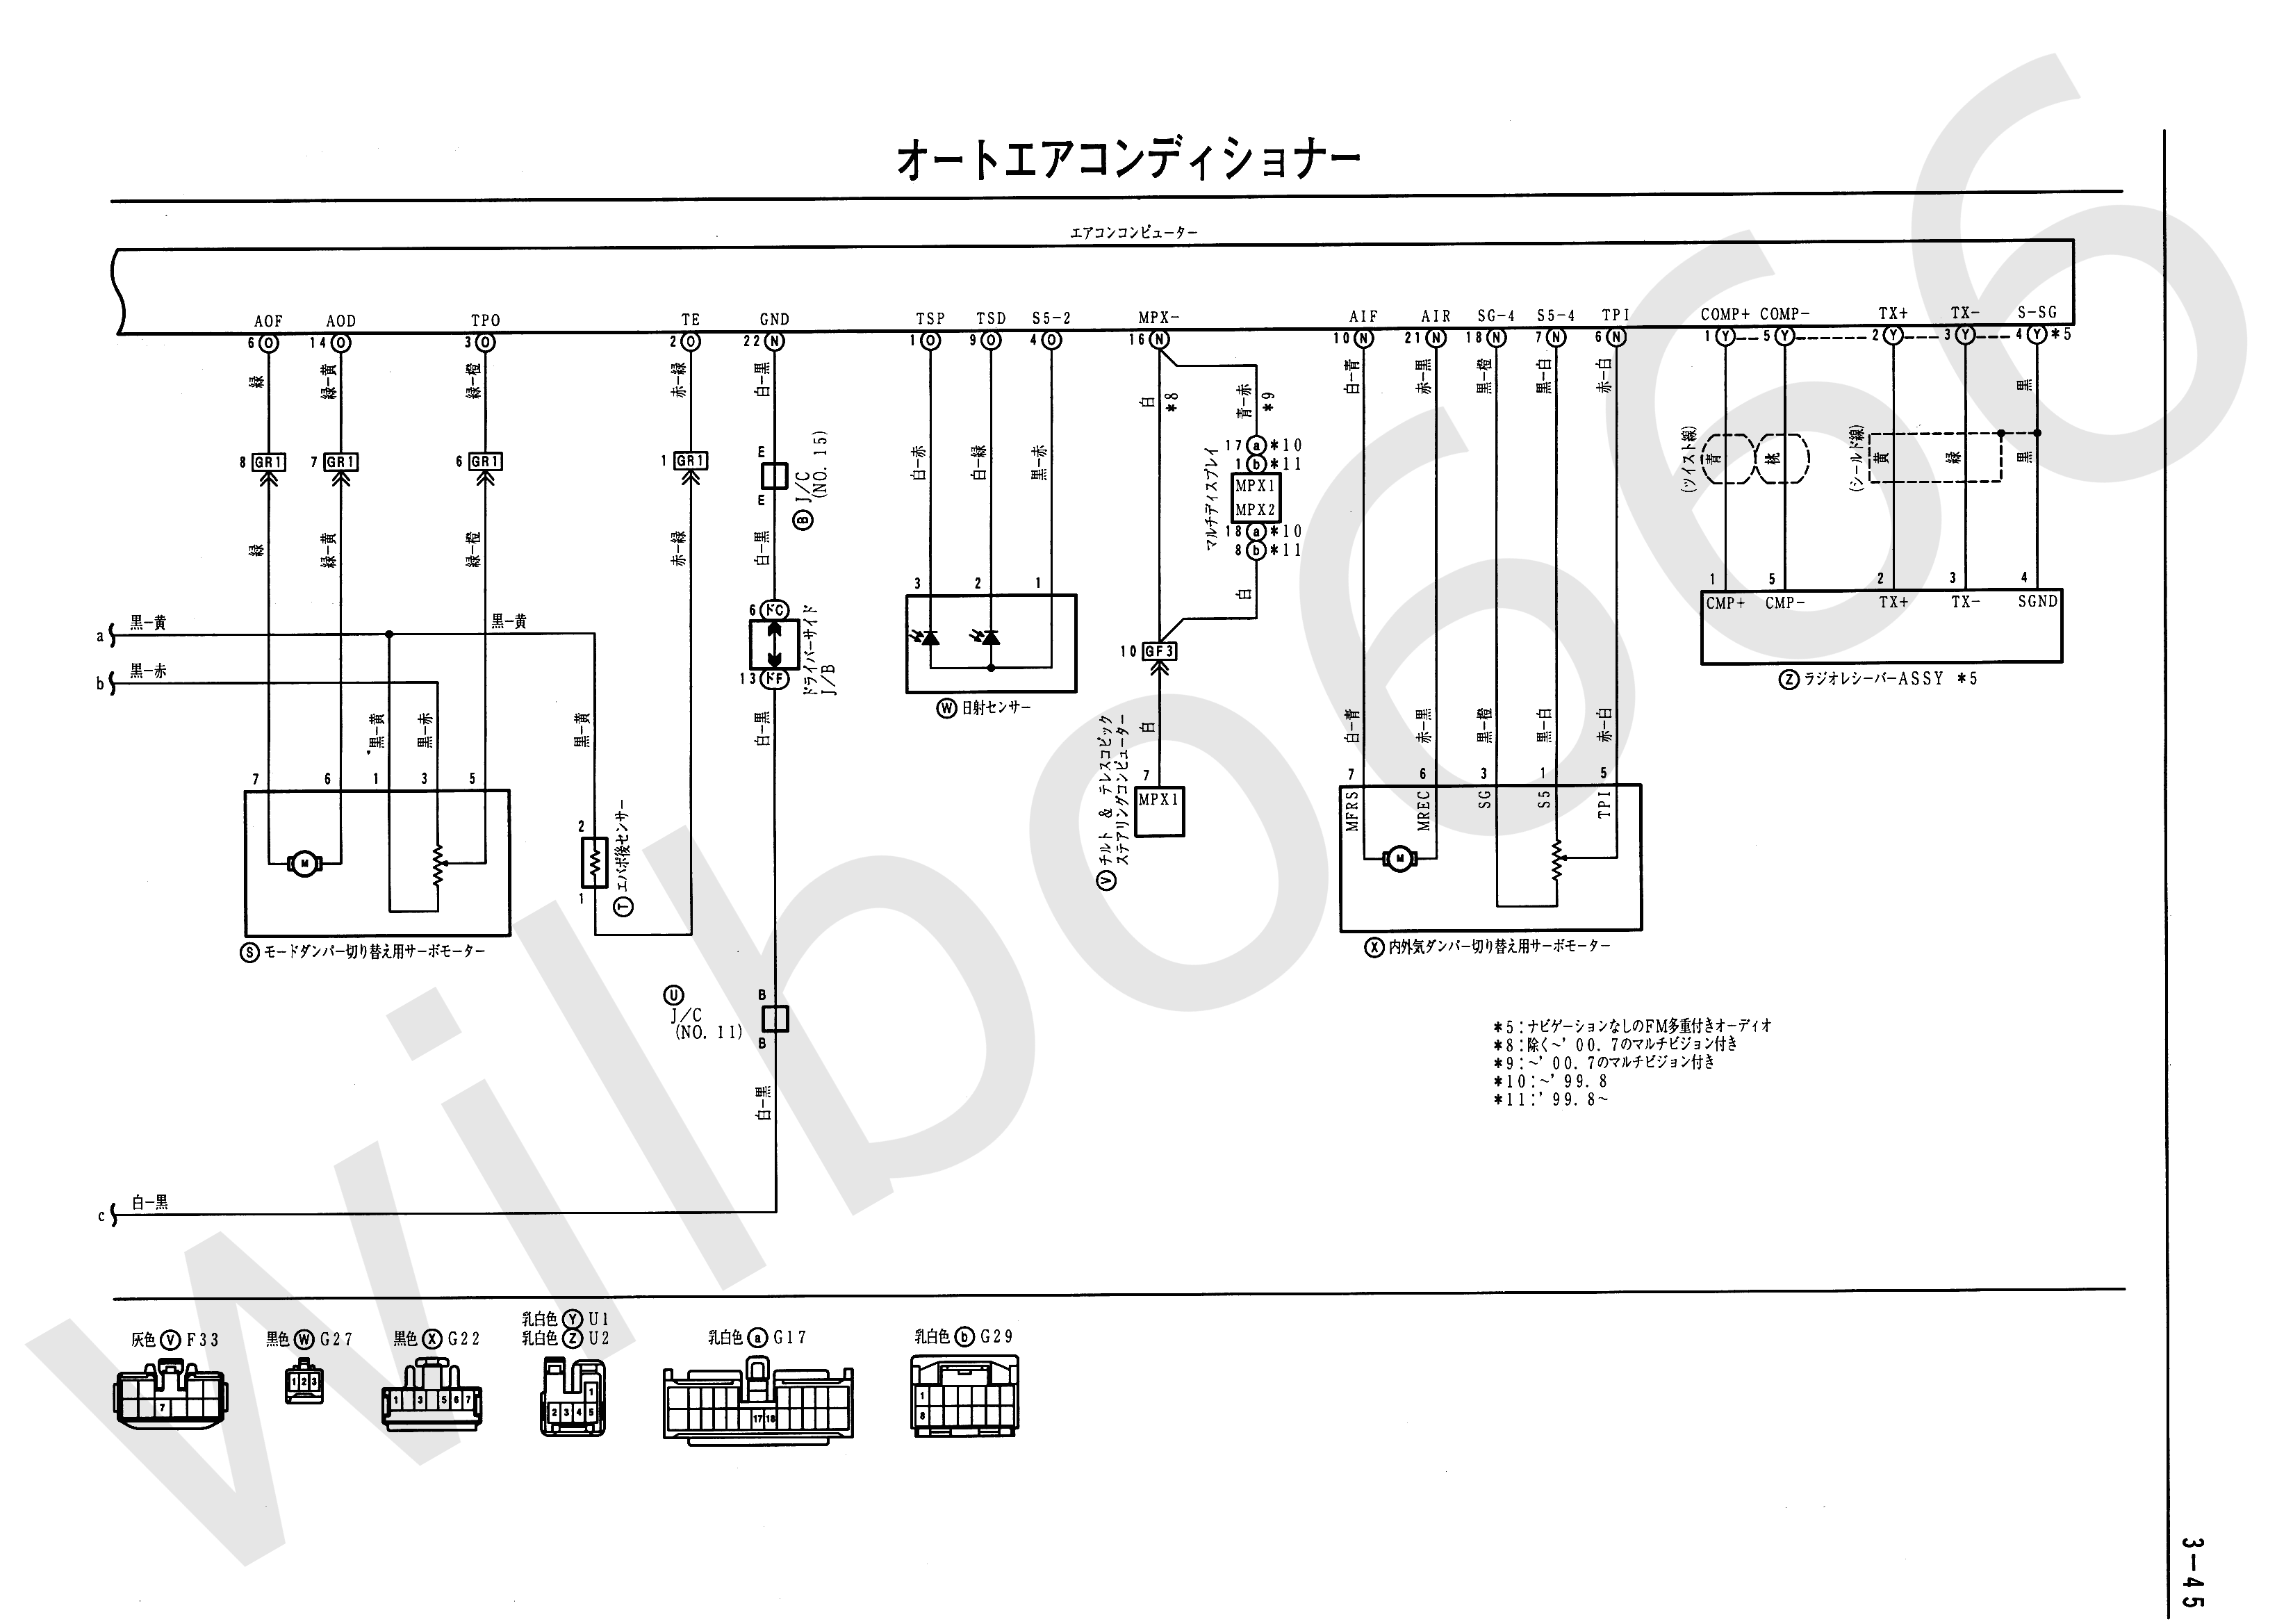 JZS161 Electrical Wiring Diagram 6748505 3 45?resize\\=3300%2C2337 rough house 50cc scooter wiring diagram kymco scooter parts kymco super 8 wiring diagram at reclaimingppi.co